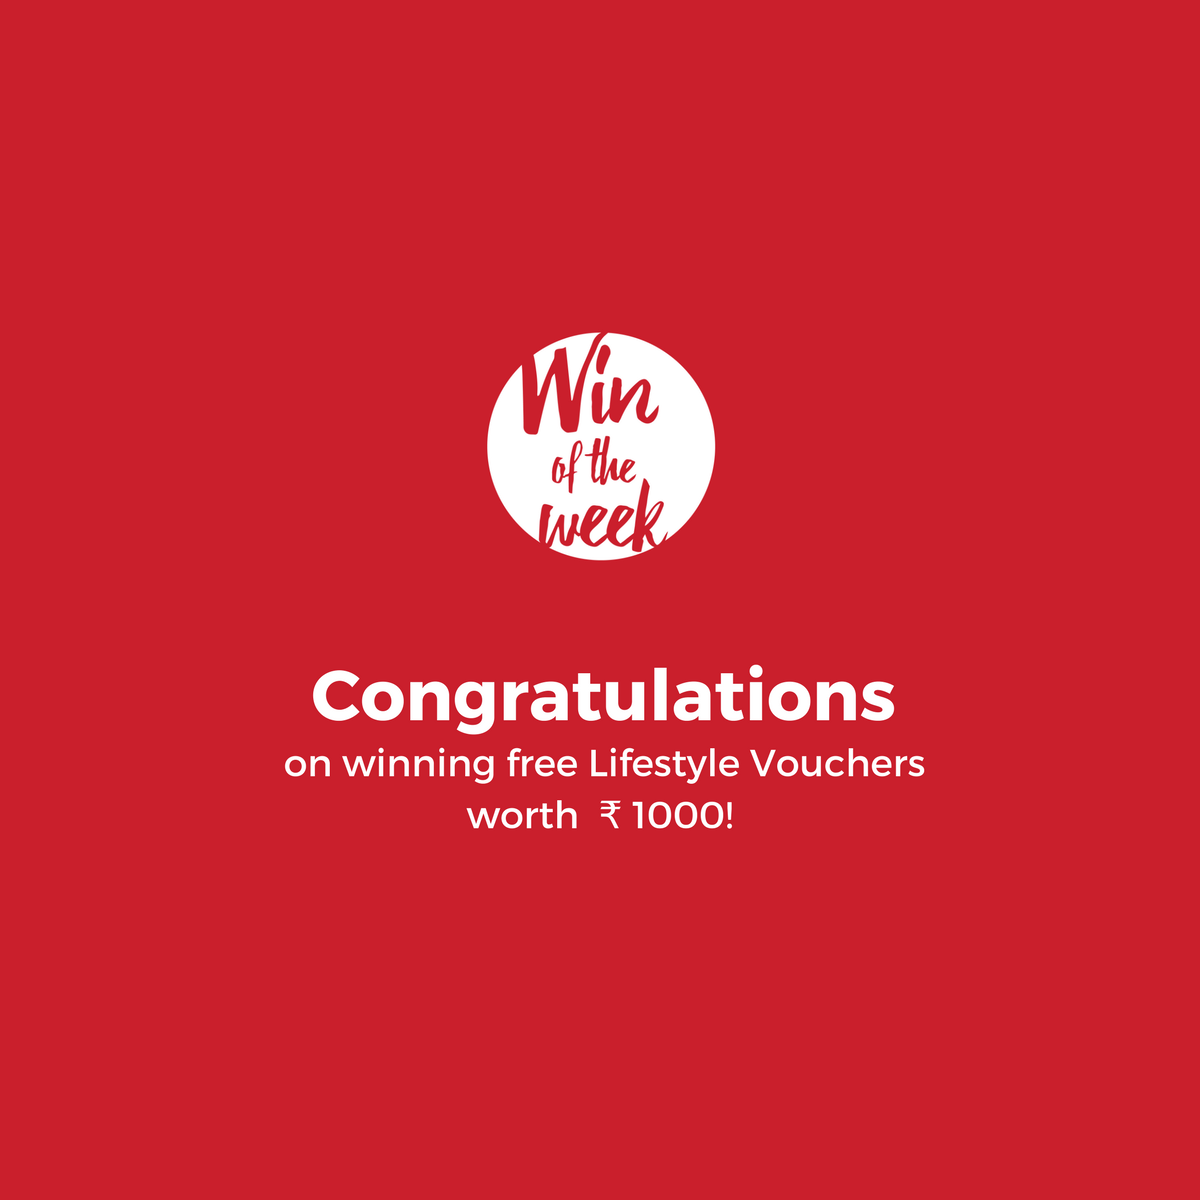 Winners - Free Lifestyle Vouchers - Win of the Week